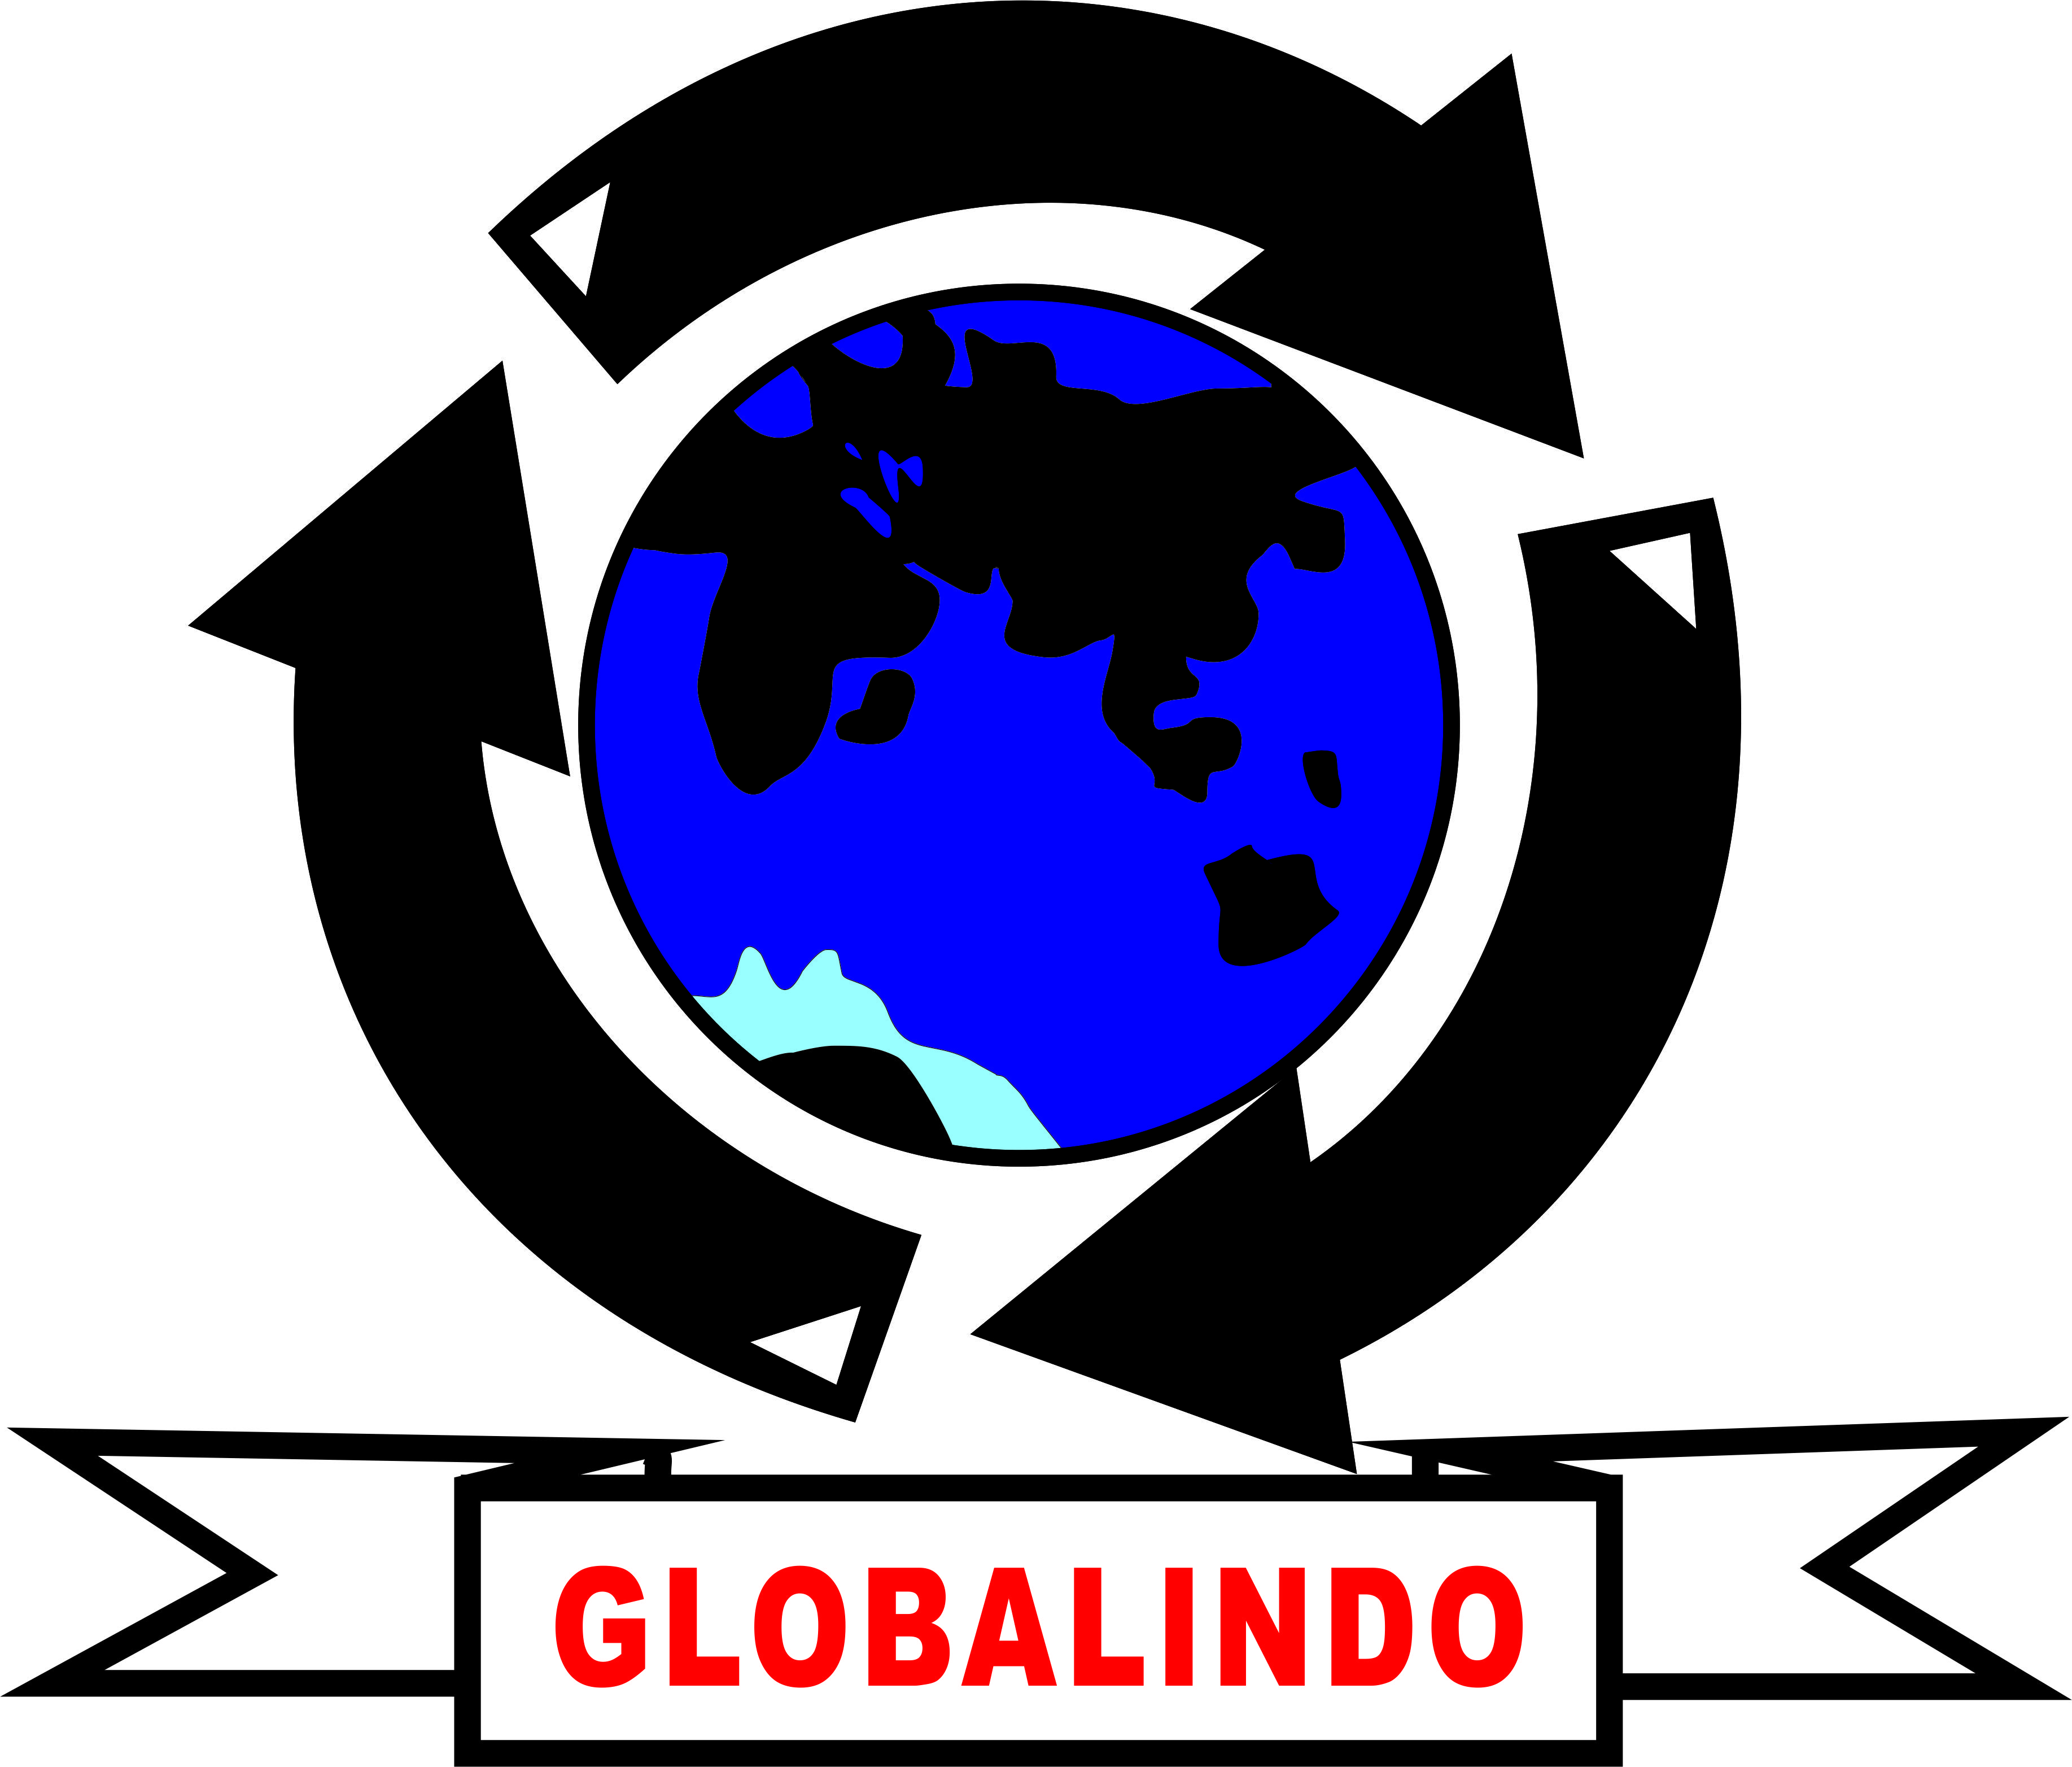 GLOBALINDO FOUNDATION